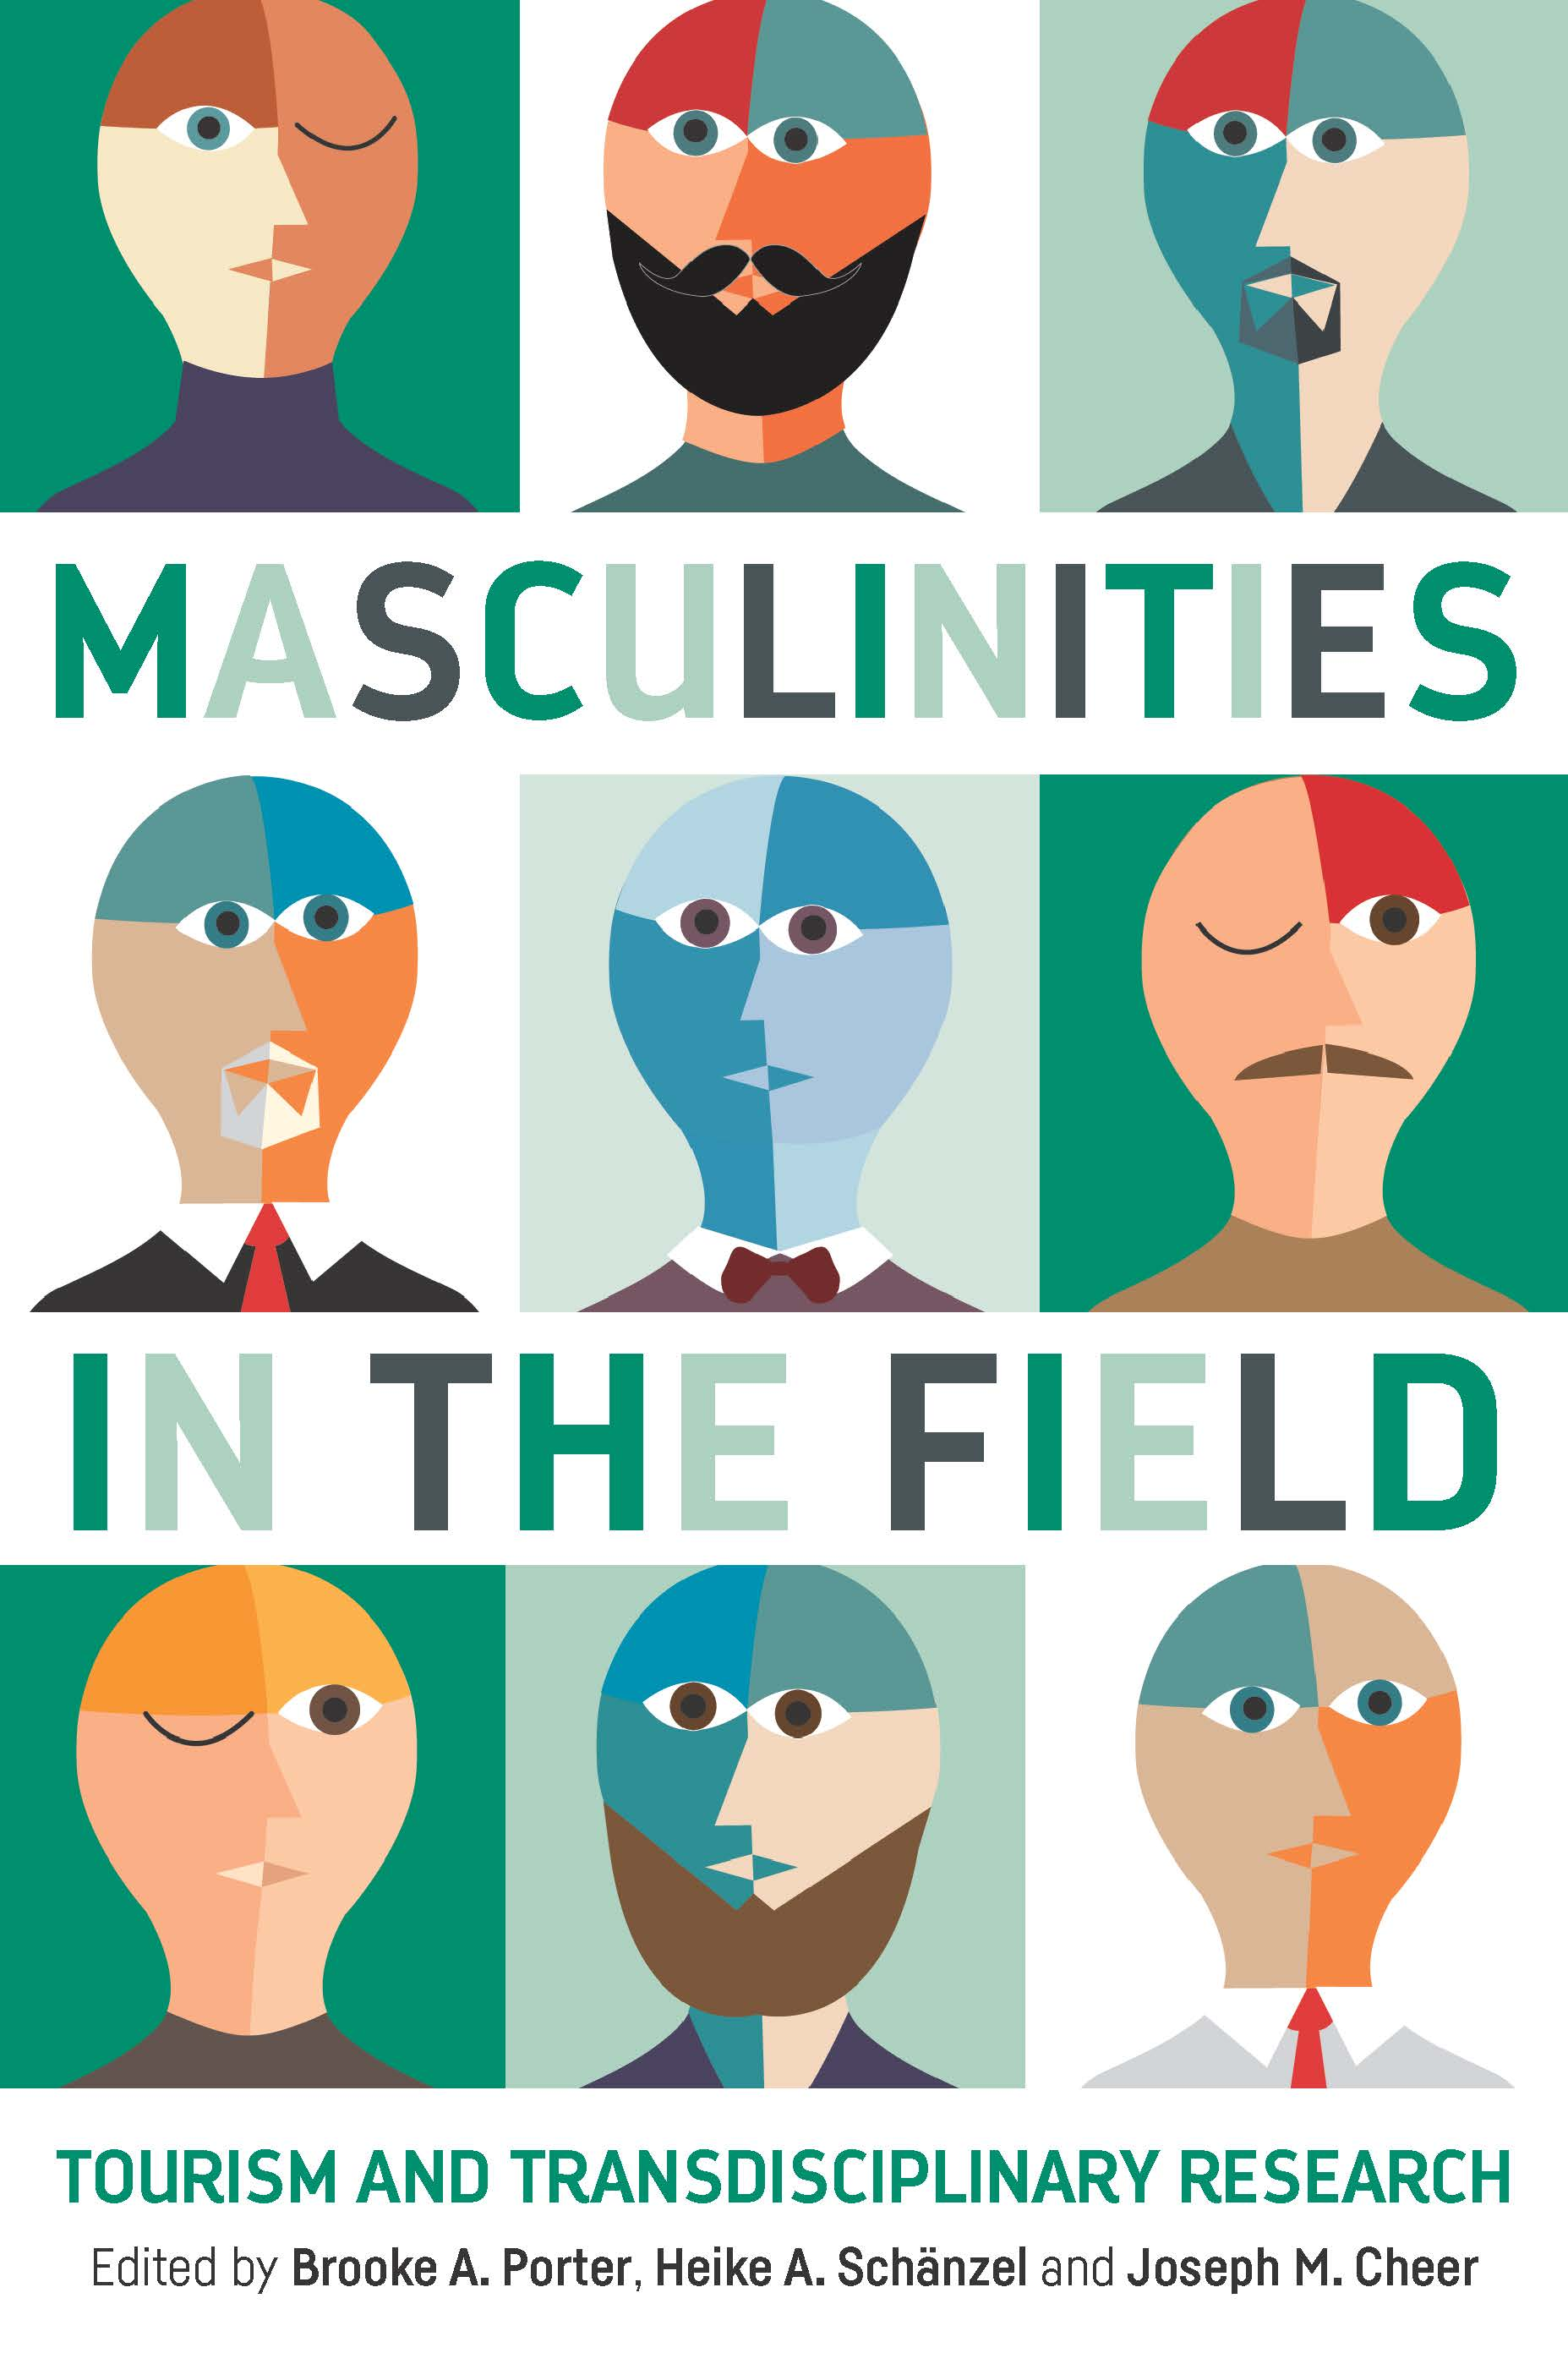 Maculinities in the Field book cover